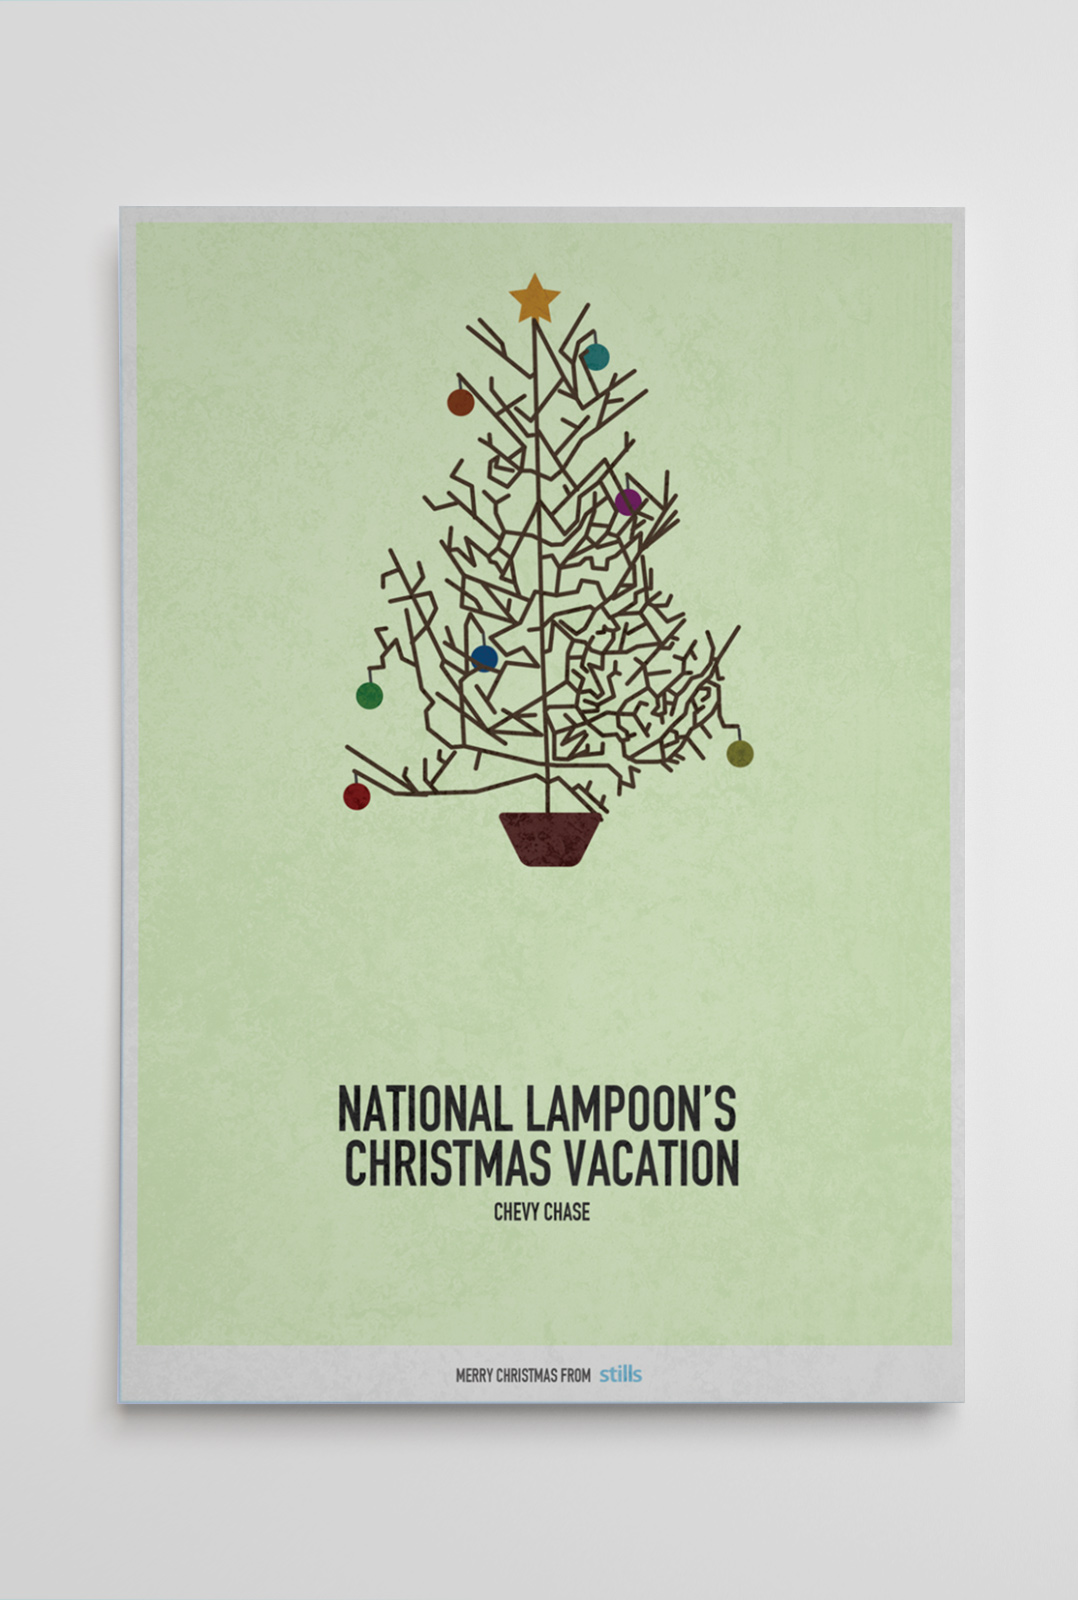 8+ Holiday Movie Posters Design Ideas, Examples